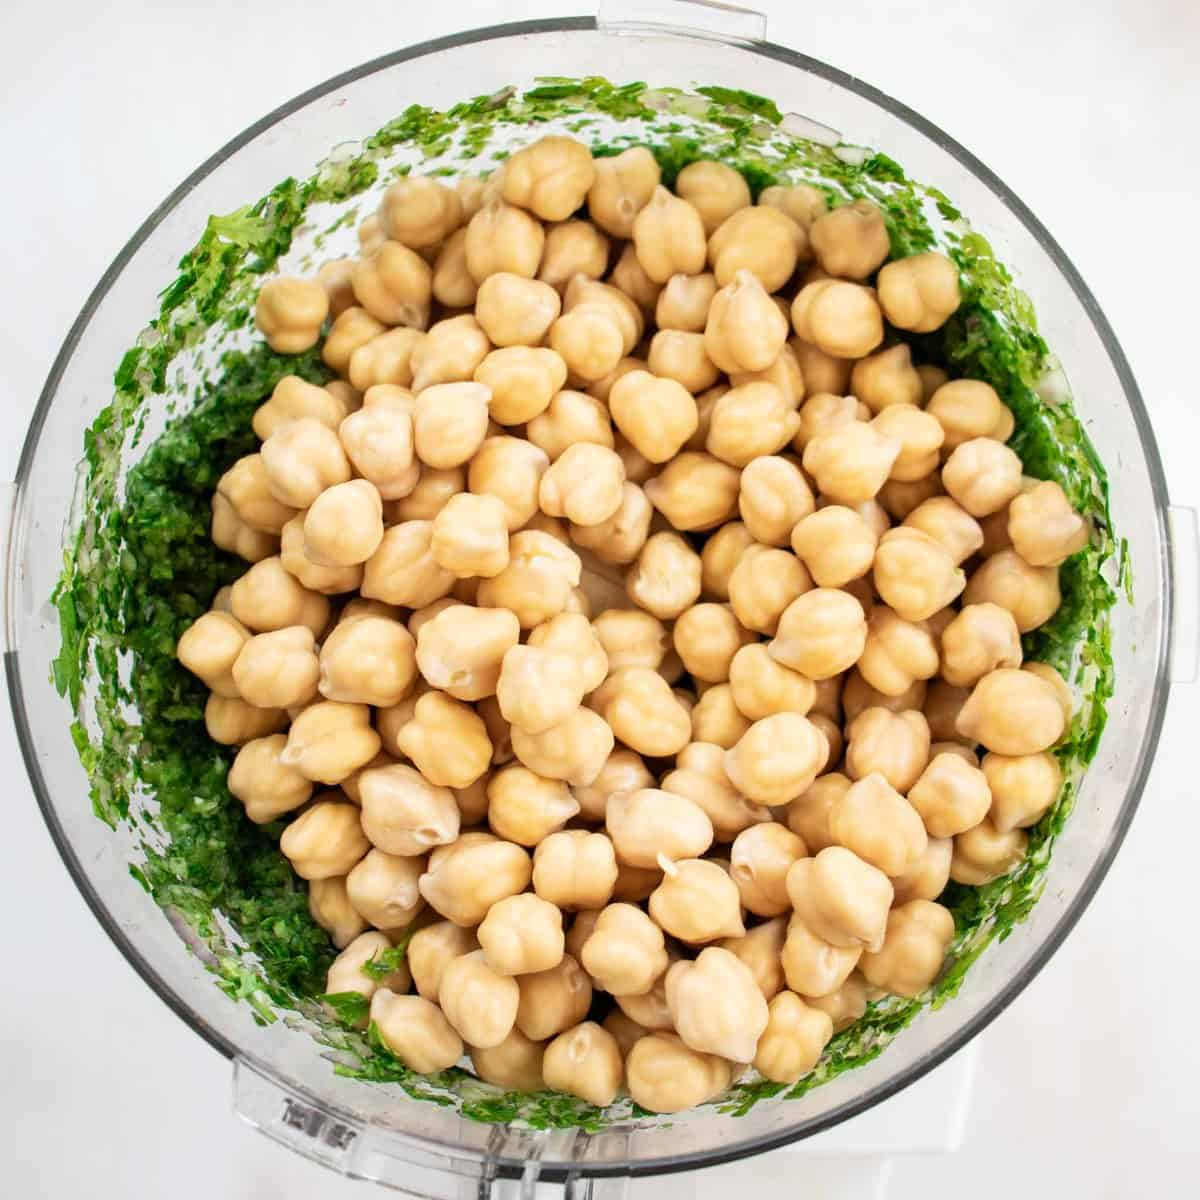 add the soaked chickpeas to the food processor